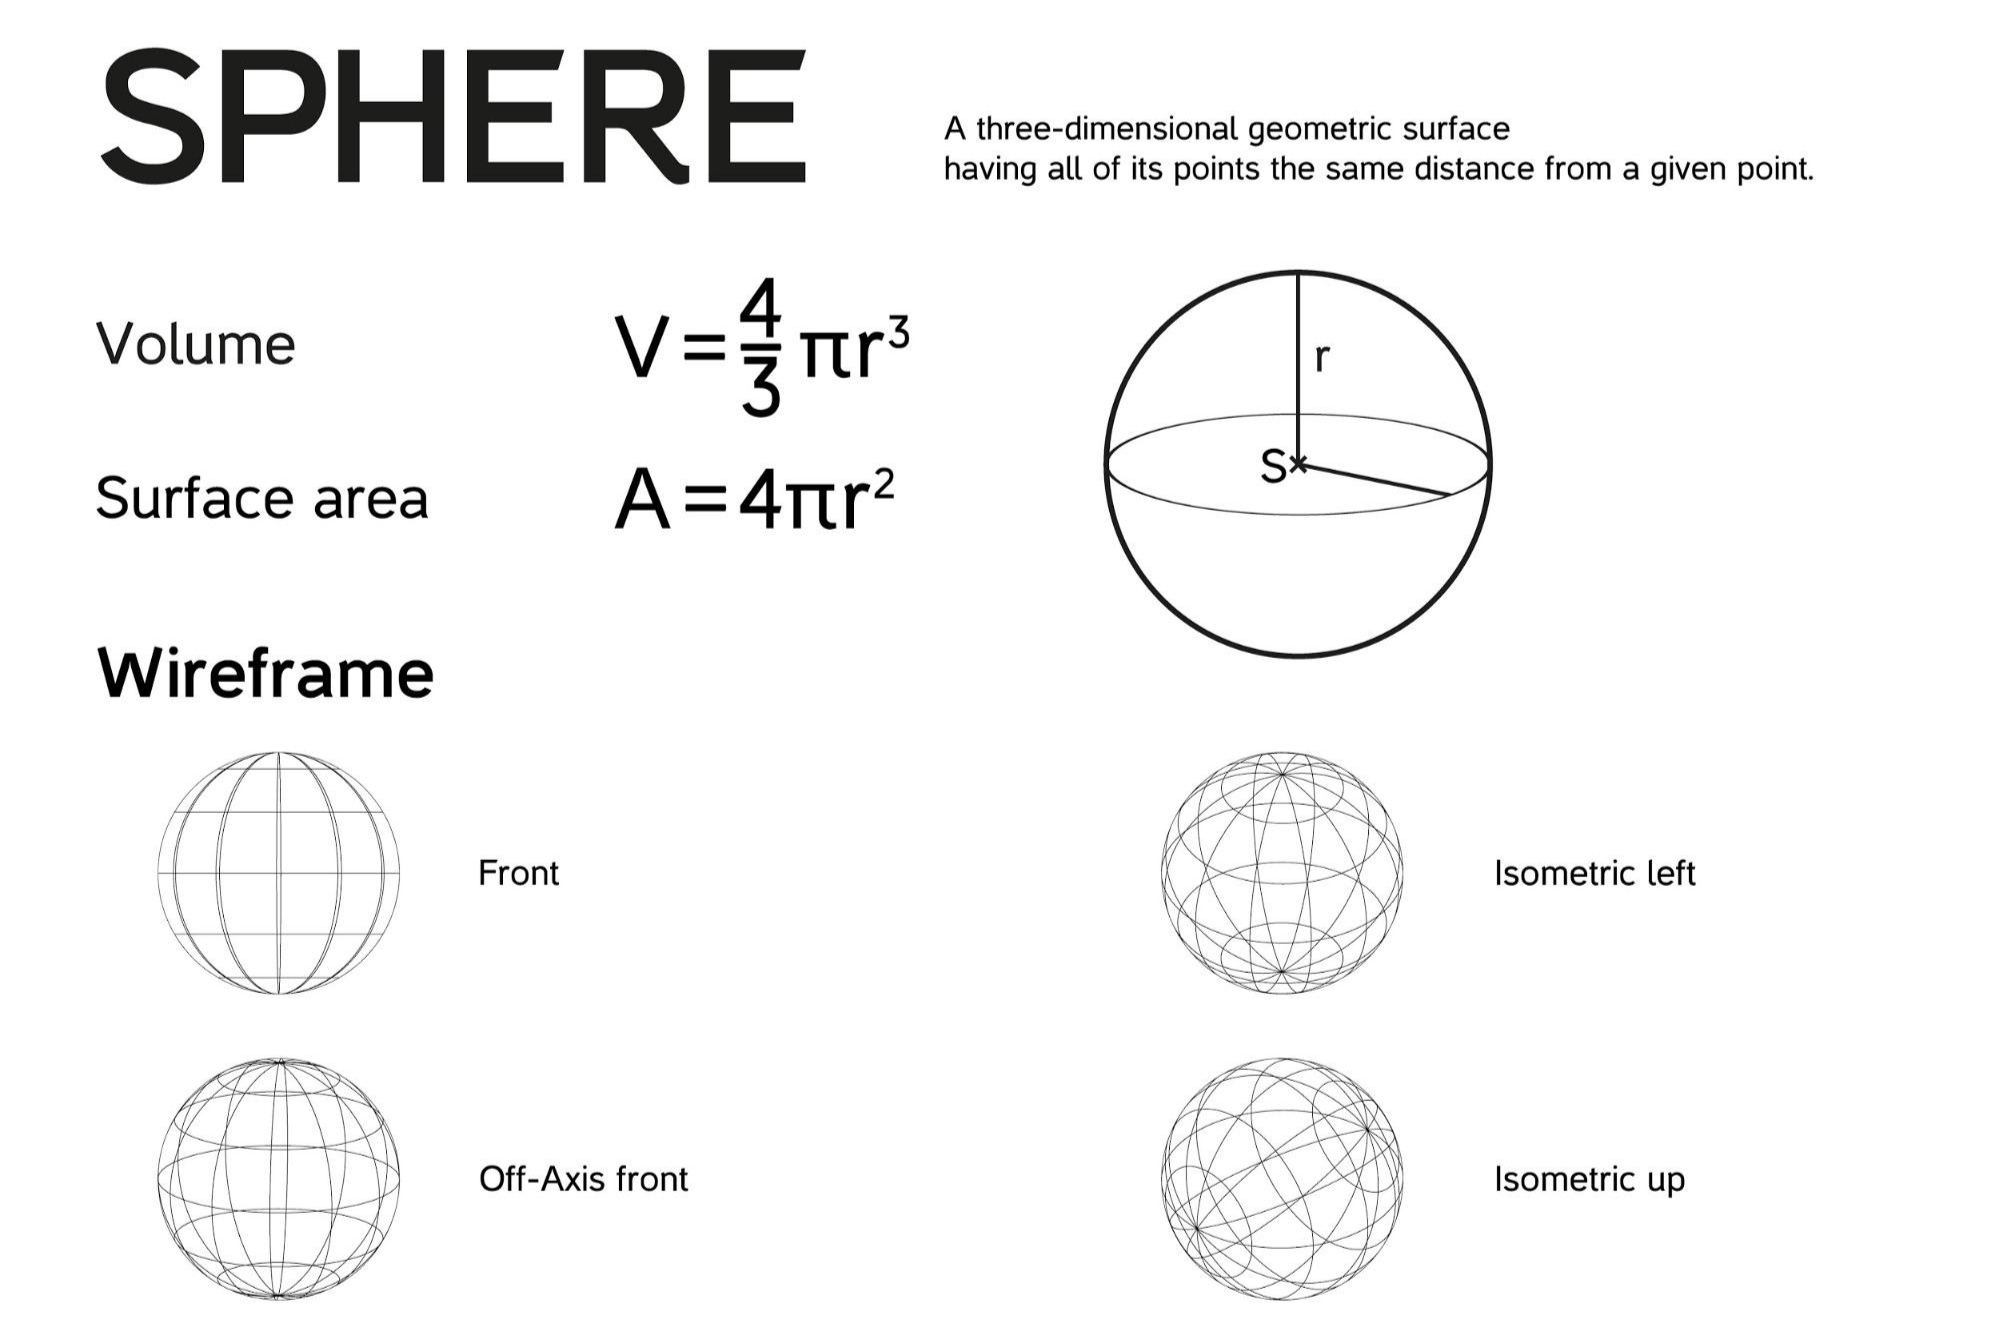 Image of the surface area definition of a sphere